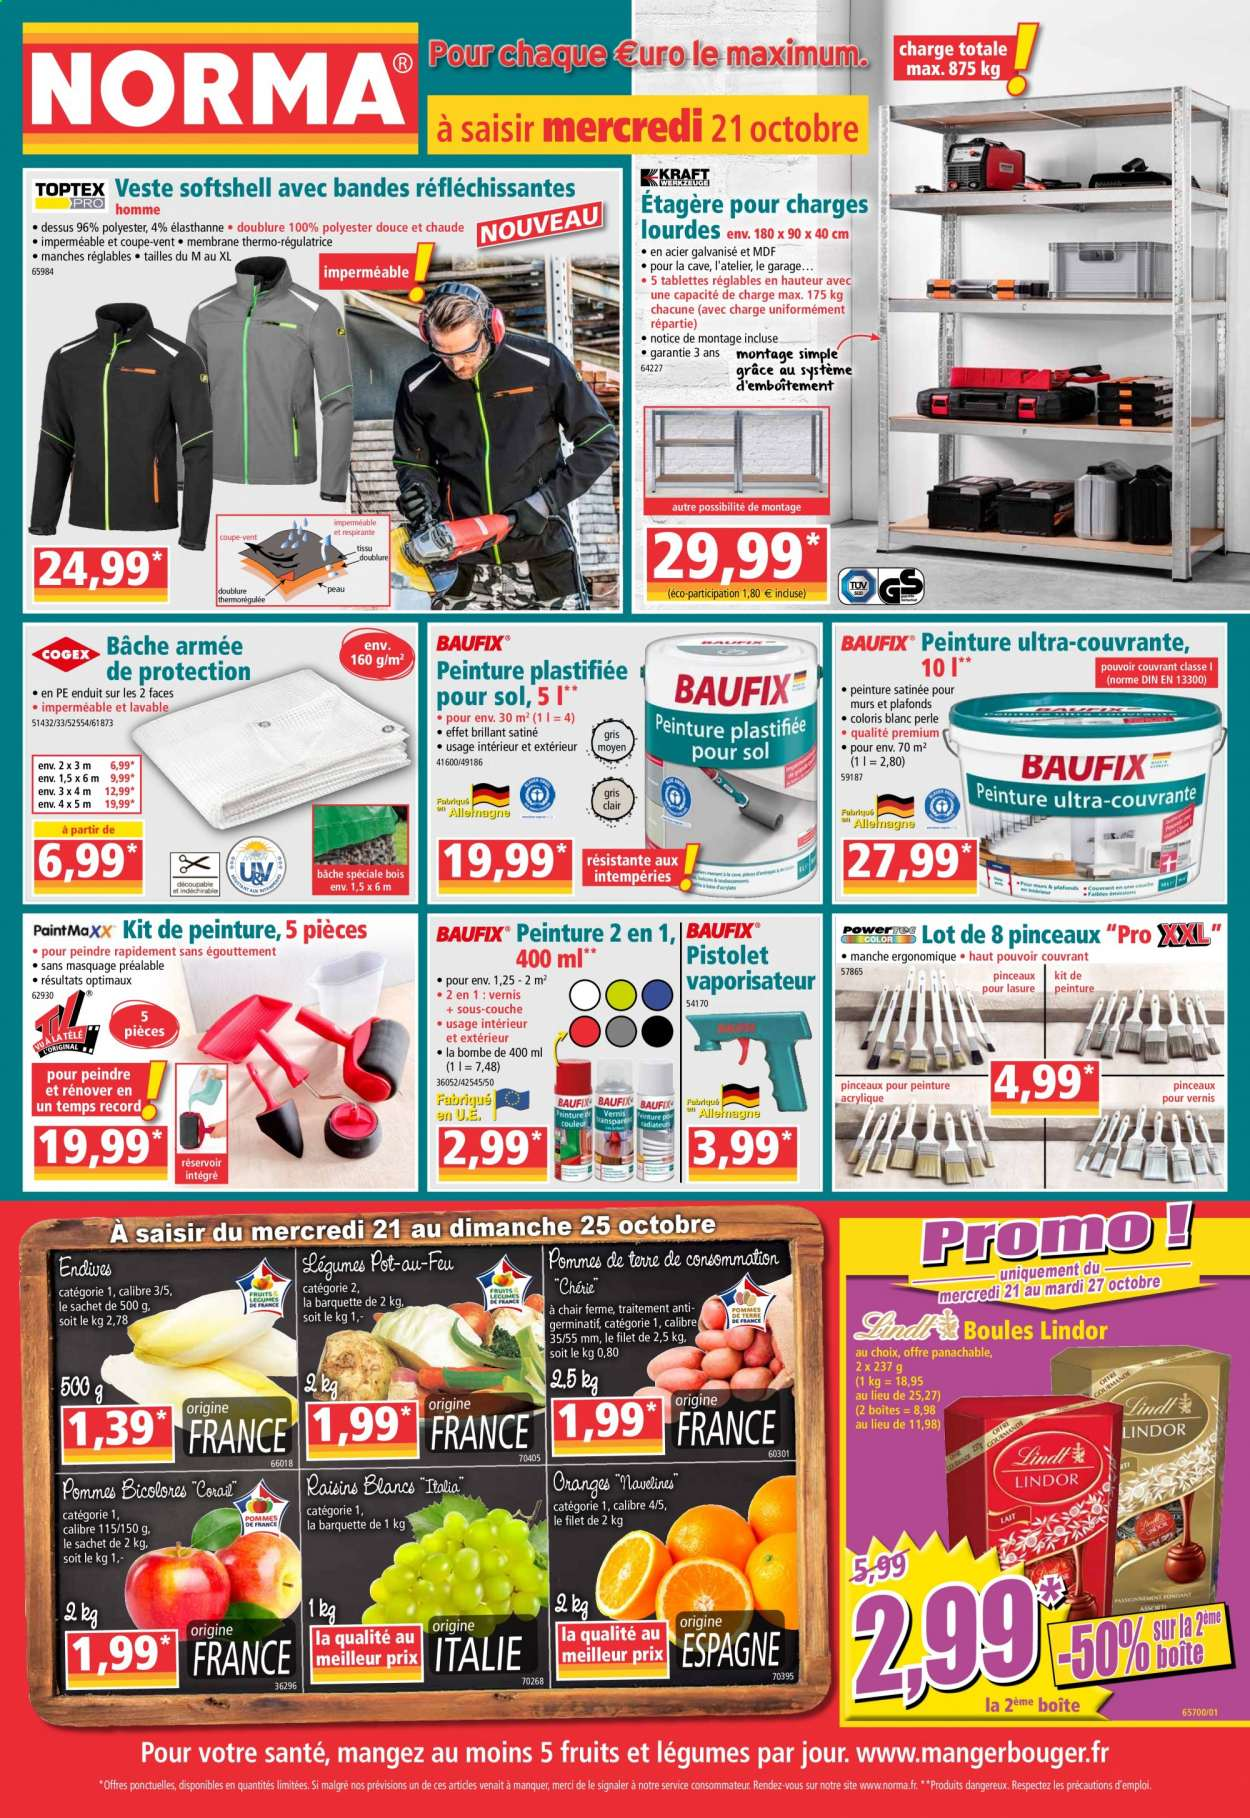 Catalogue Norma - 21.10.2020 - 27.10.2020. Page 1.